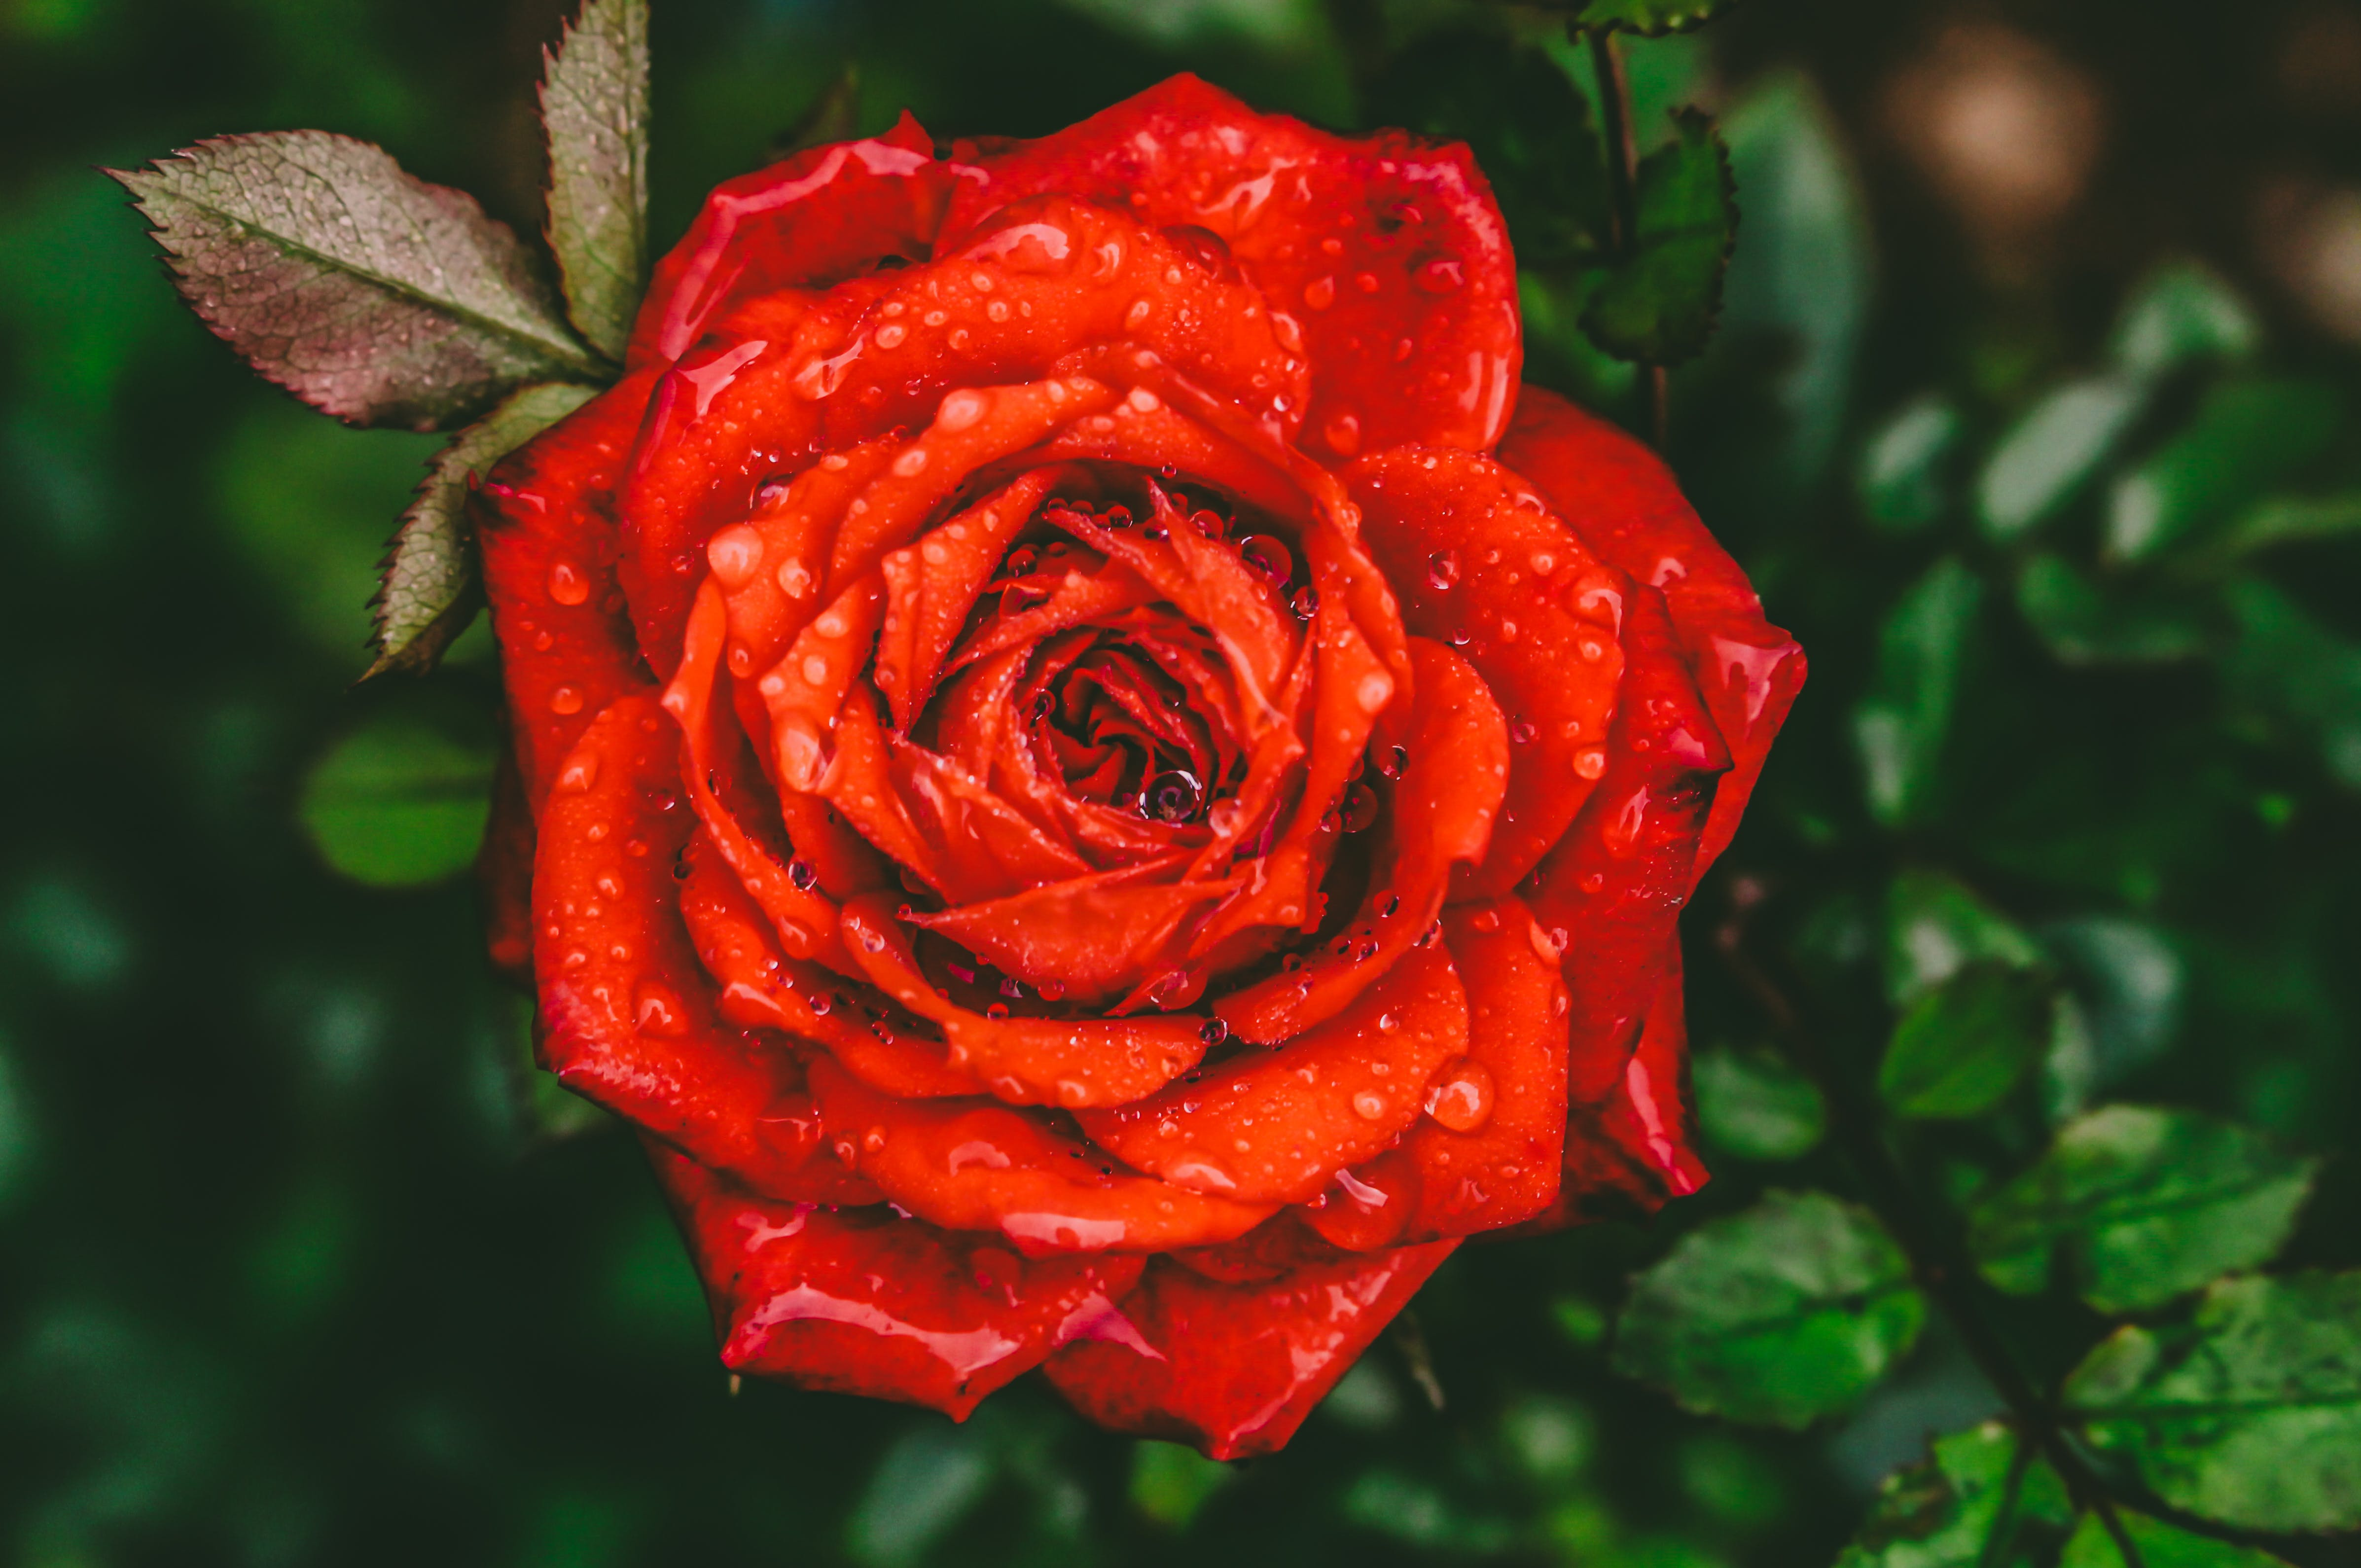 1000 Beautiful Red Rose Photos Pexels Free Stock Photos